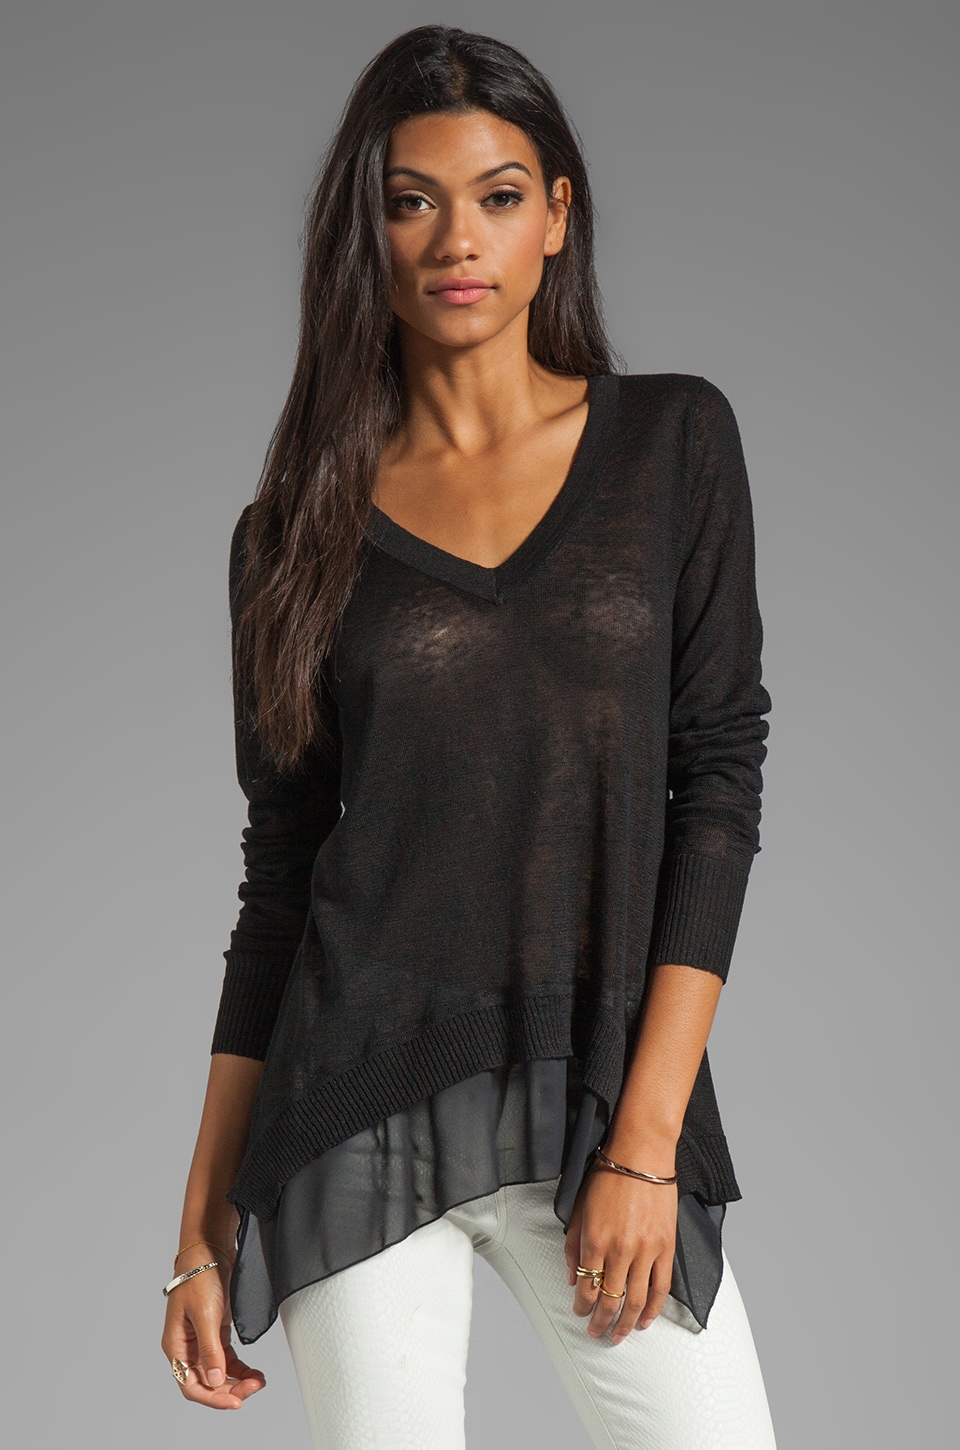 Central Park West Chapel Hill Top in Black